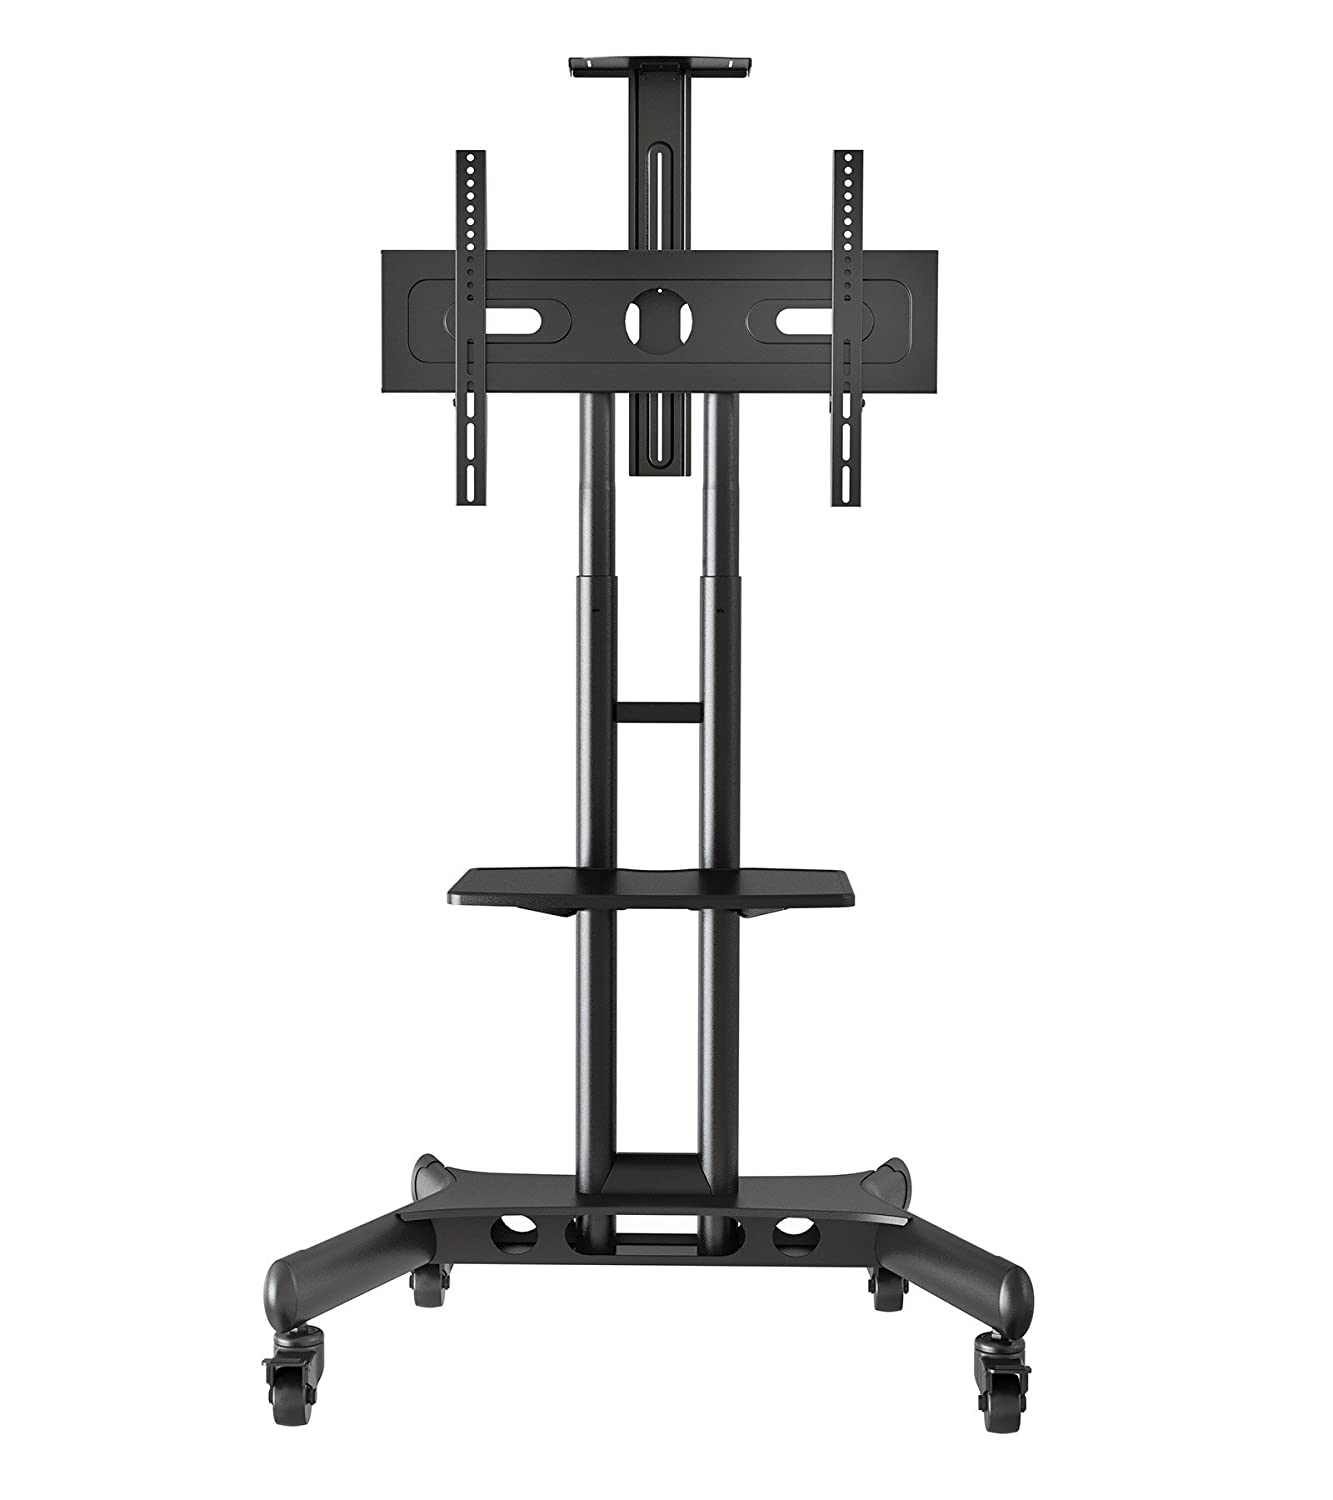 Amazon.com: Mount Factory Rolling TV Cart Mobile TV Stand for 40-65 ...